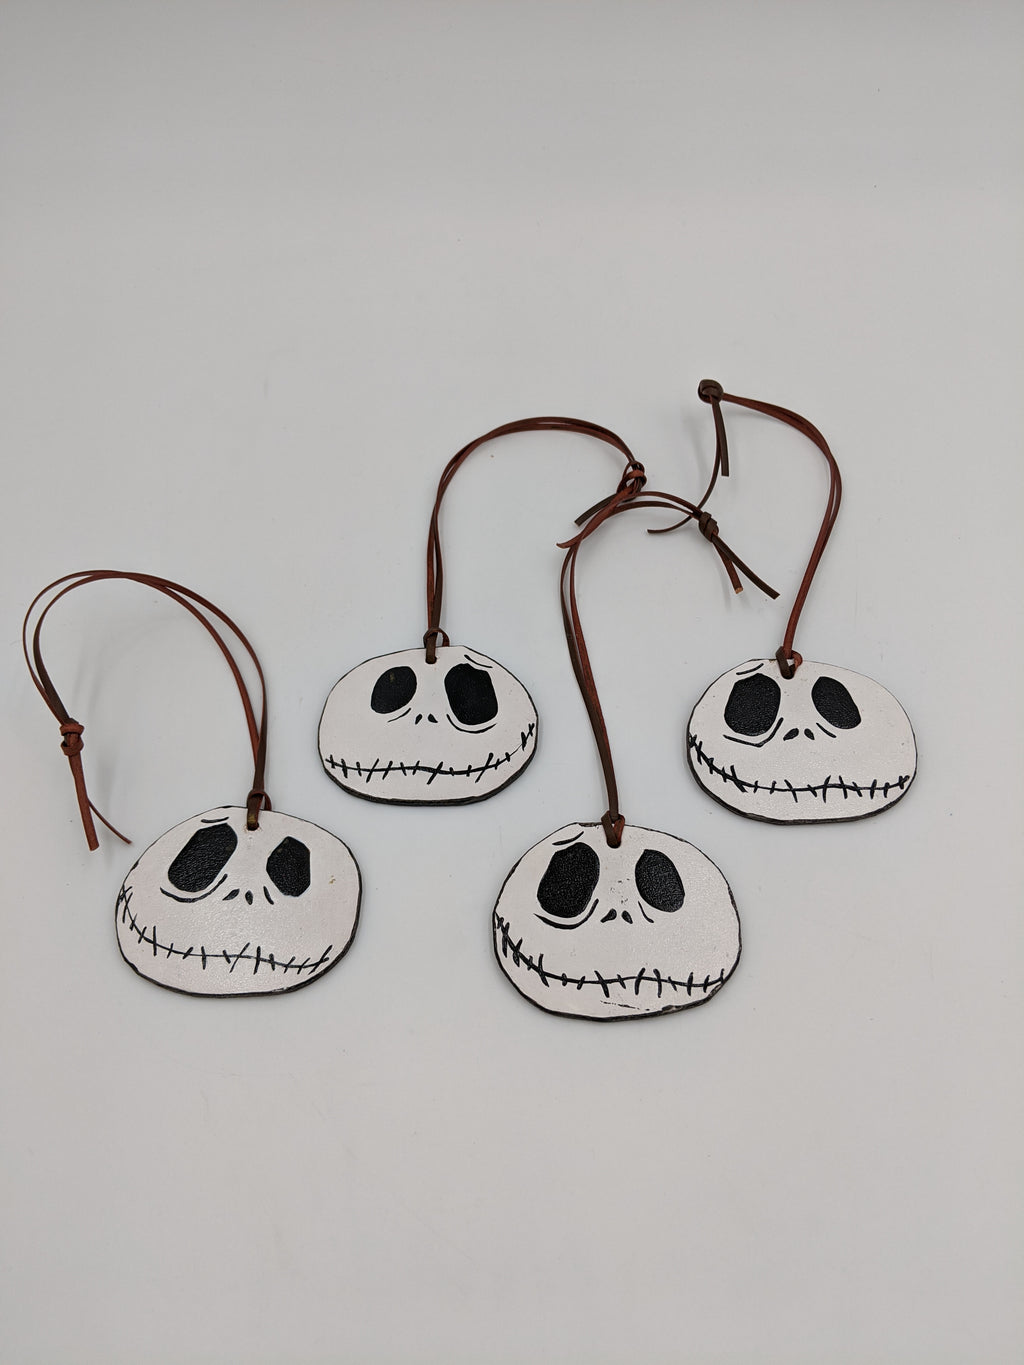 Leather tree ornament, inspired by Nightmare before Christmas, Jack Skellington